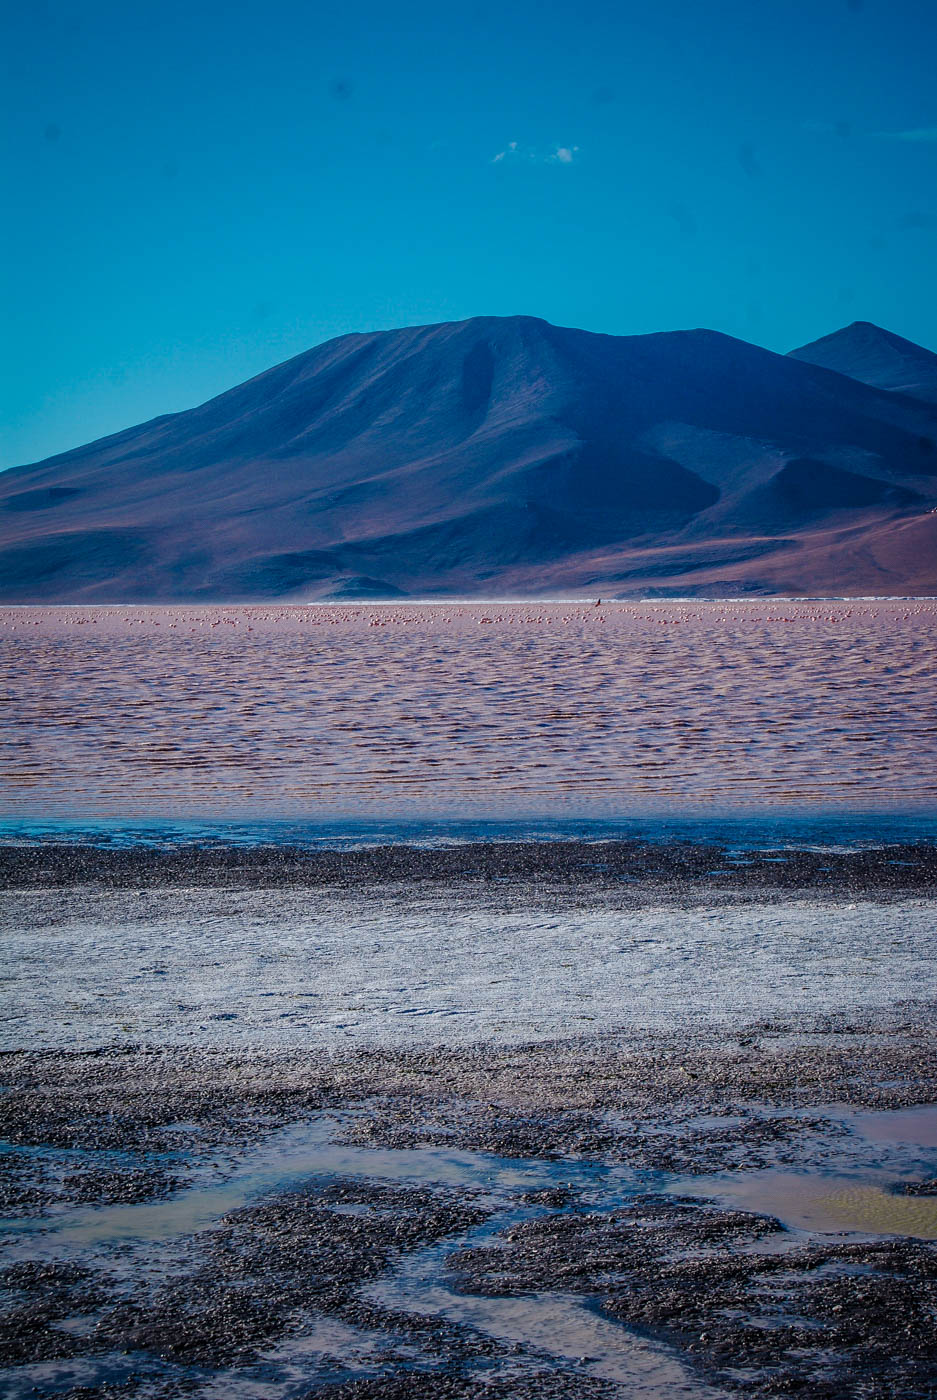 Laguna Colorada, Bolivia South America Travel Bucket List. 90 Awesome Things to do in South America When Backpacking and Travelling #southamerica #bucketlist #traveldestinations